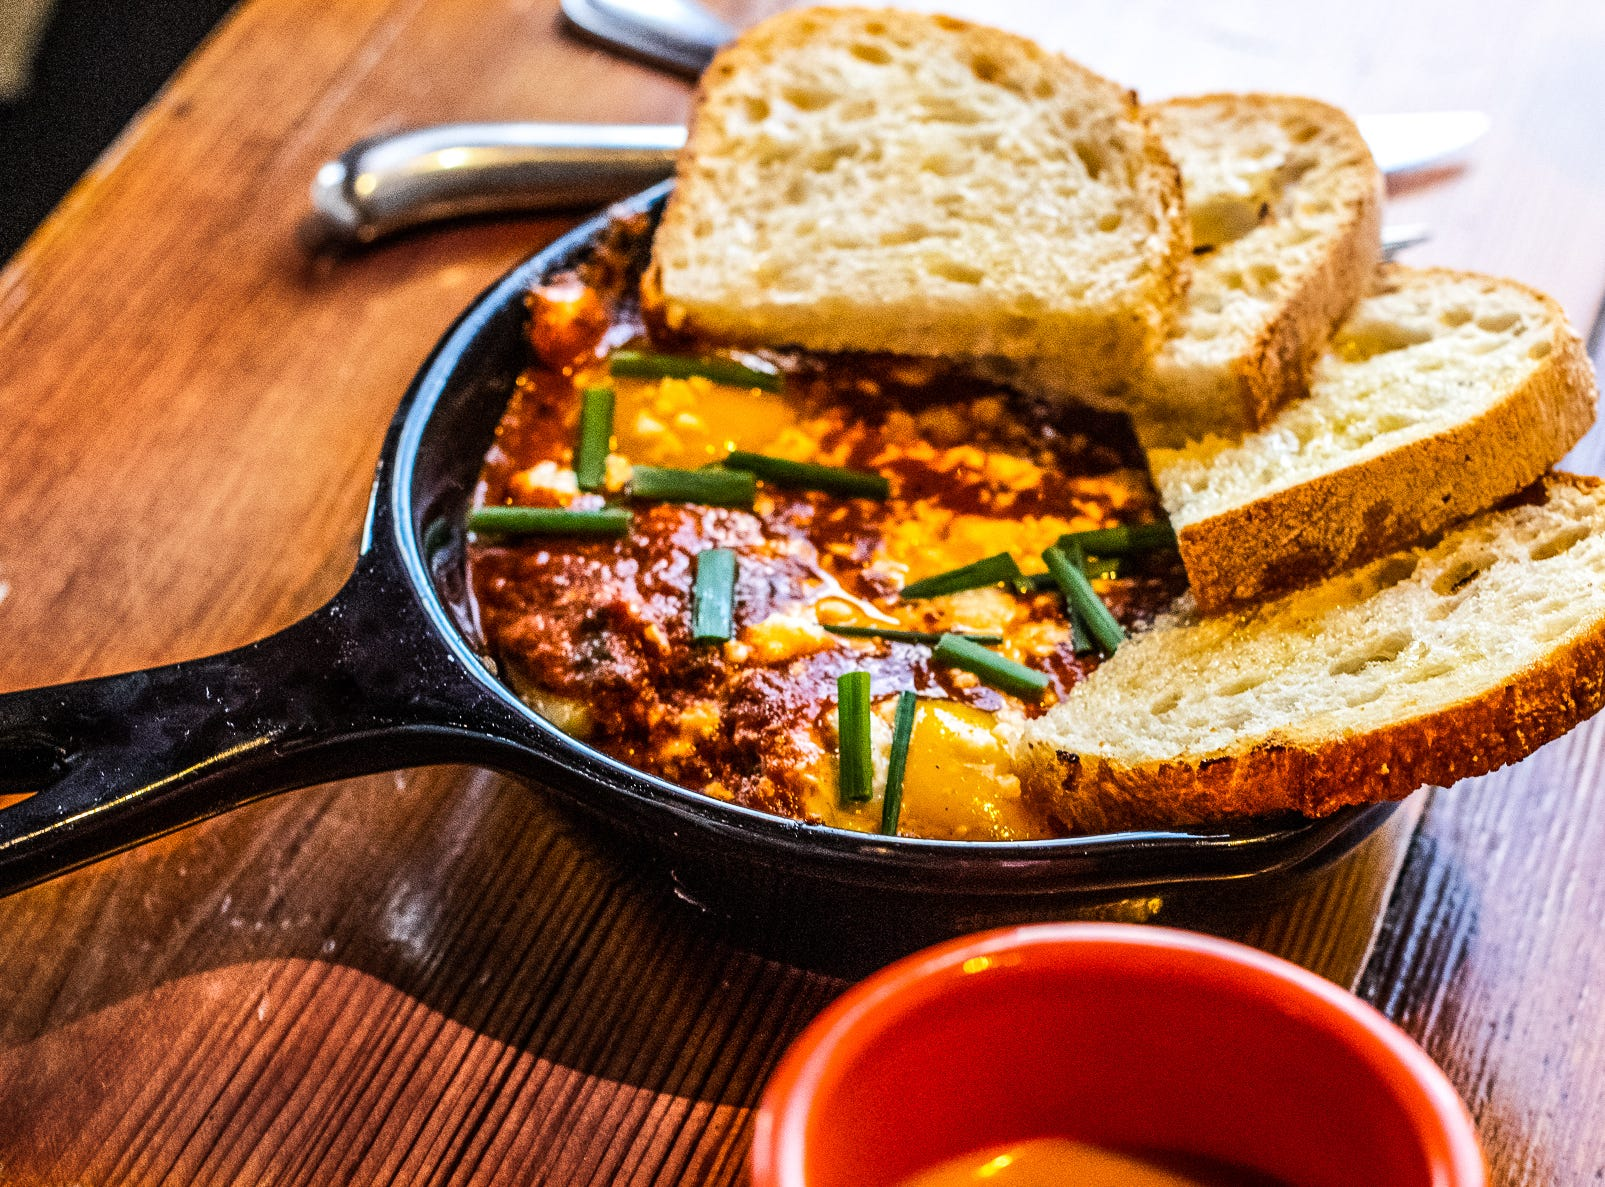 The Shakshuka Skillet is made with two sunny side up eggs in finger hot pepper-tomato sauce, organic arugula, garlic spinach, feta and Yukon gold potatoes and is served with toasted sourdough.